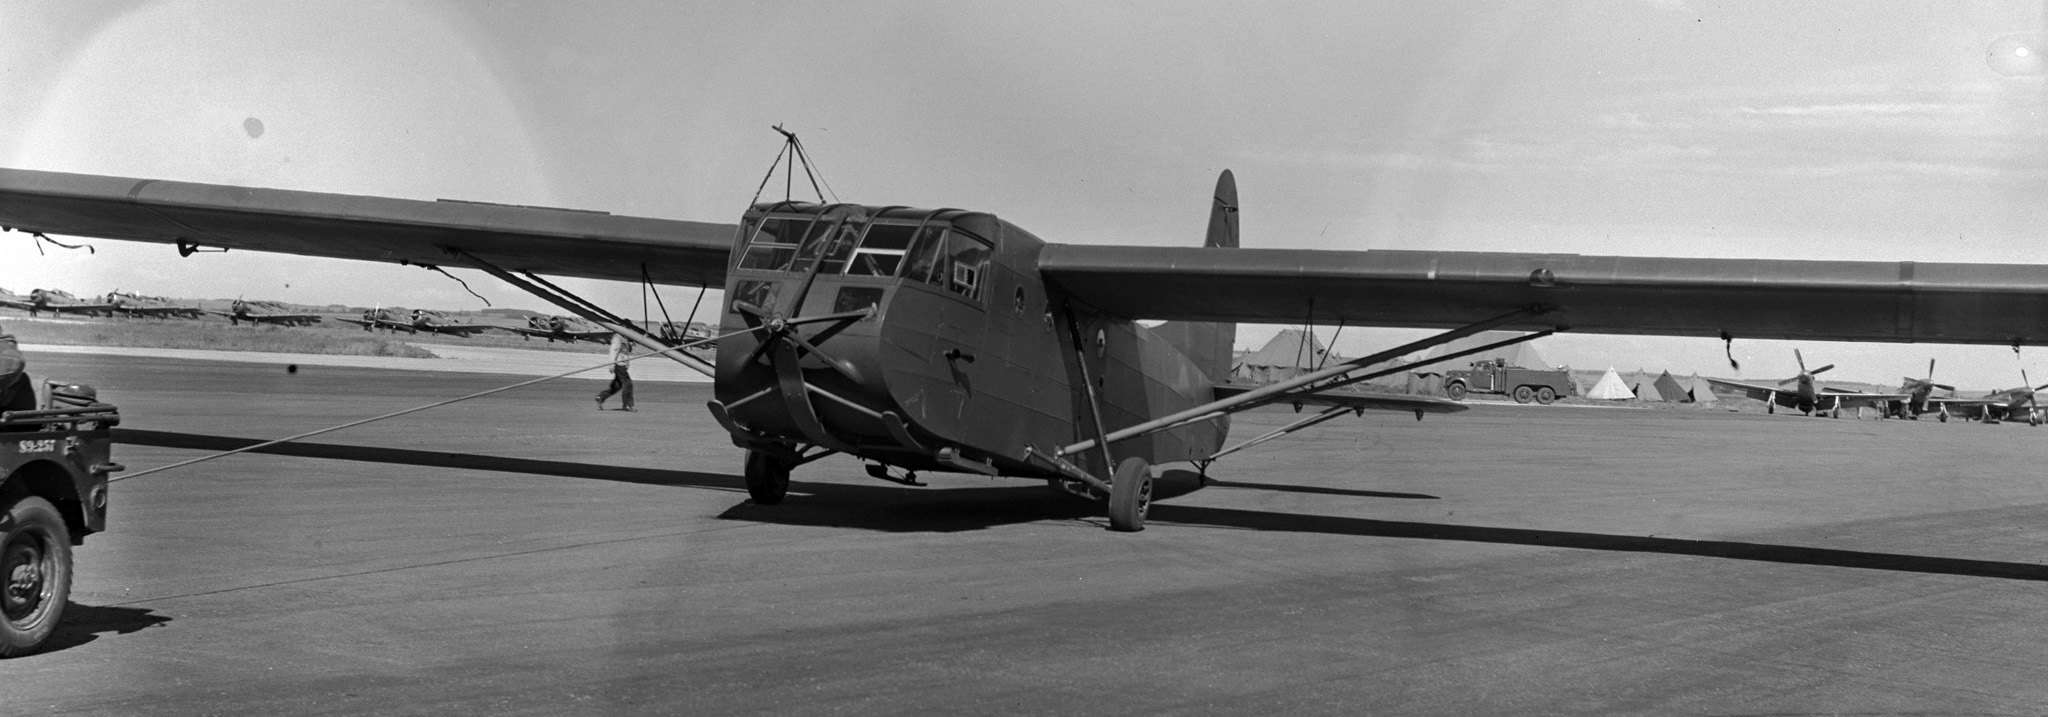 A Horsa glider is towed to a new location. PHOTO: DND Archives, PL-58622